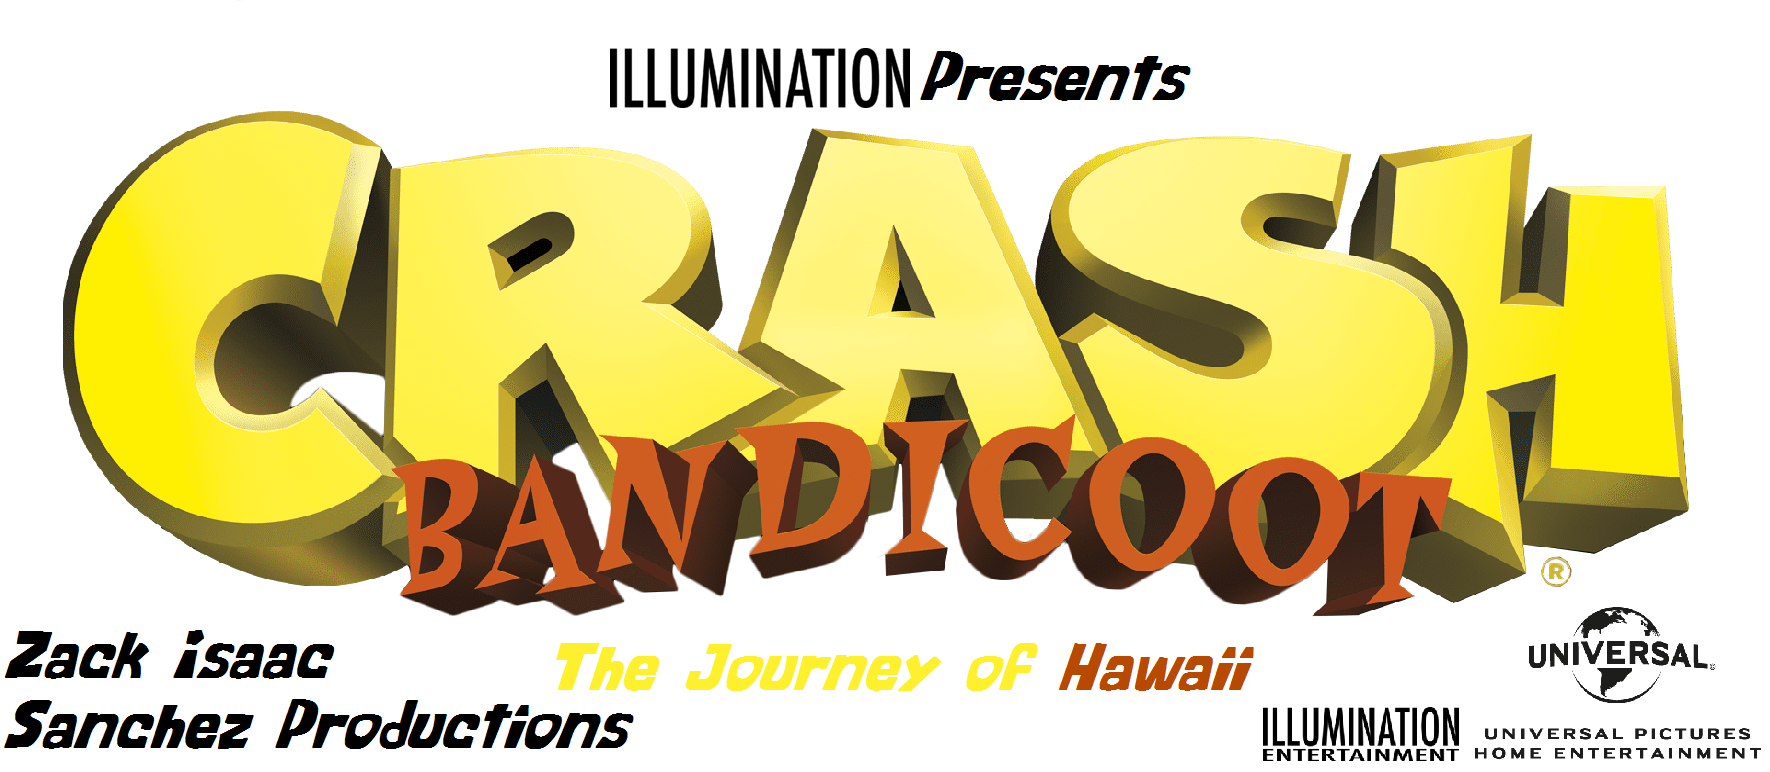 Crash Bandicoot: The Journey of Hawaii